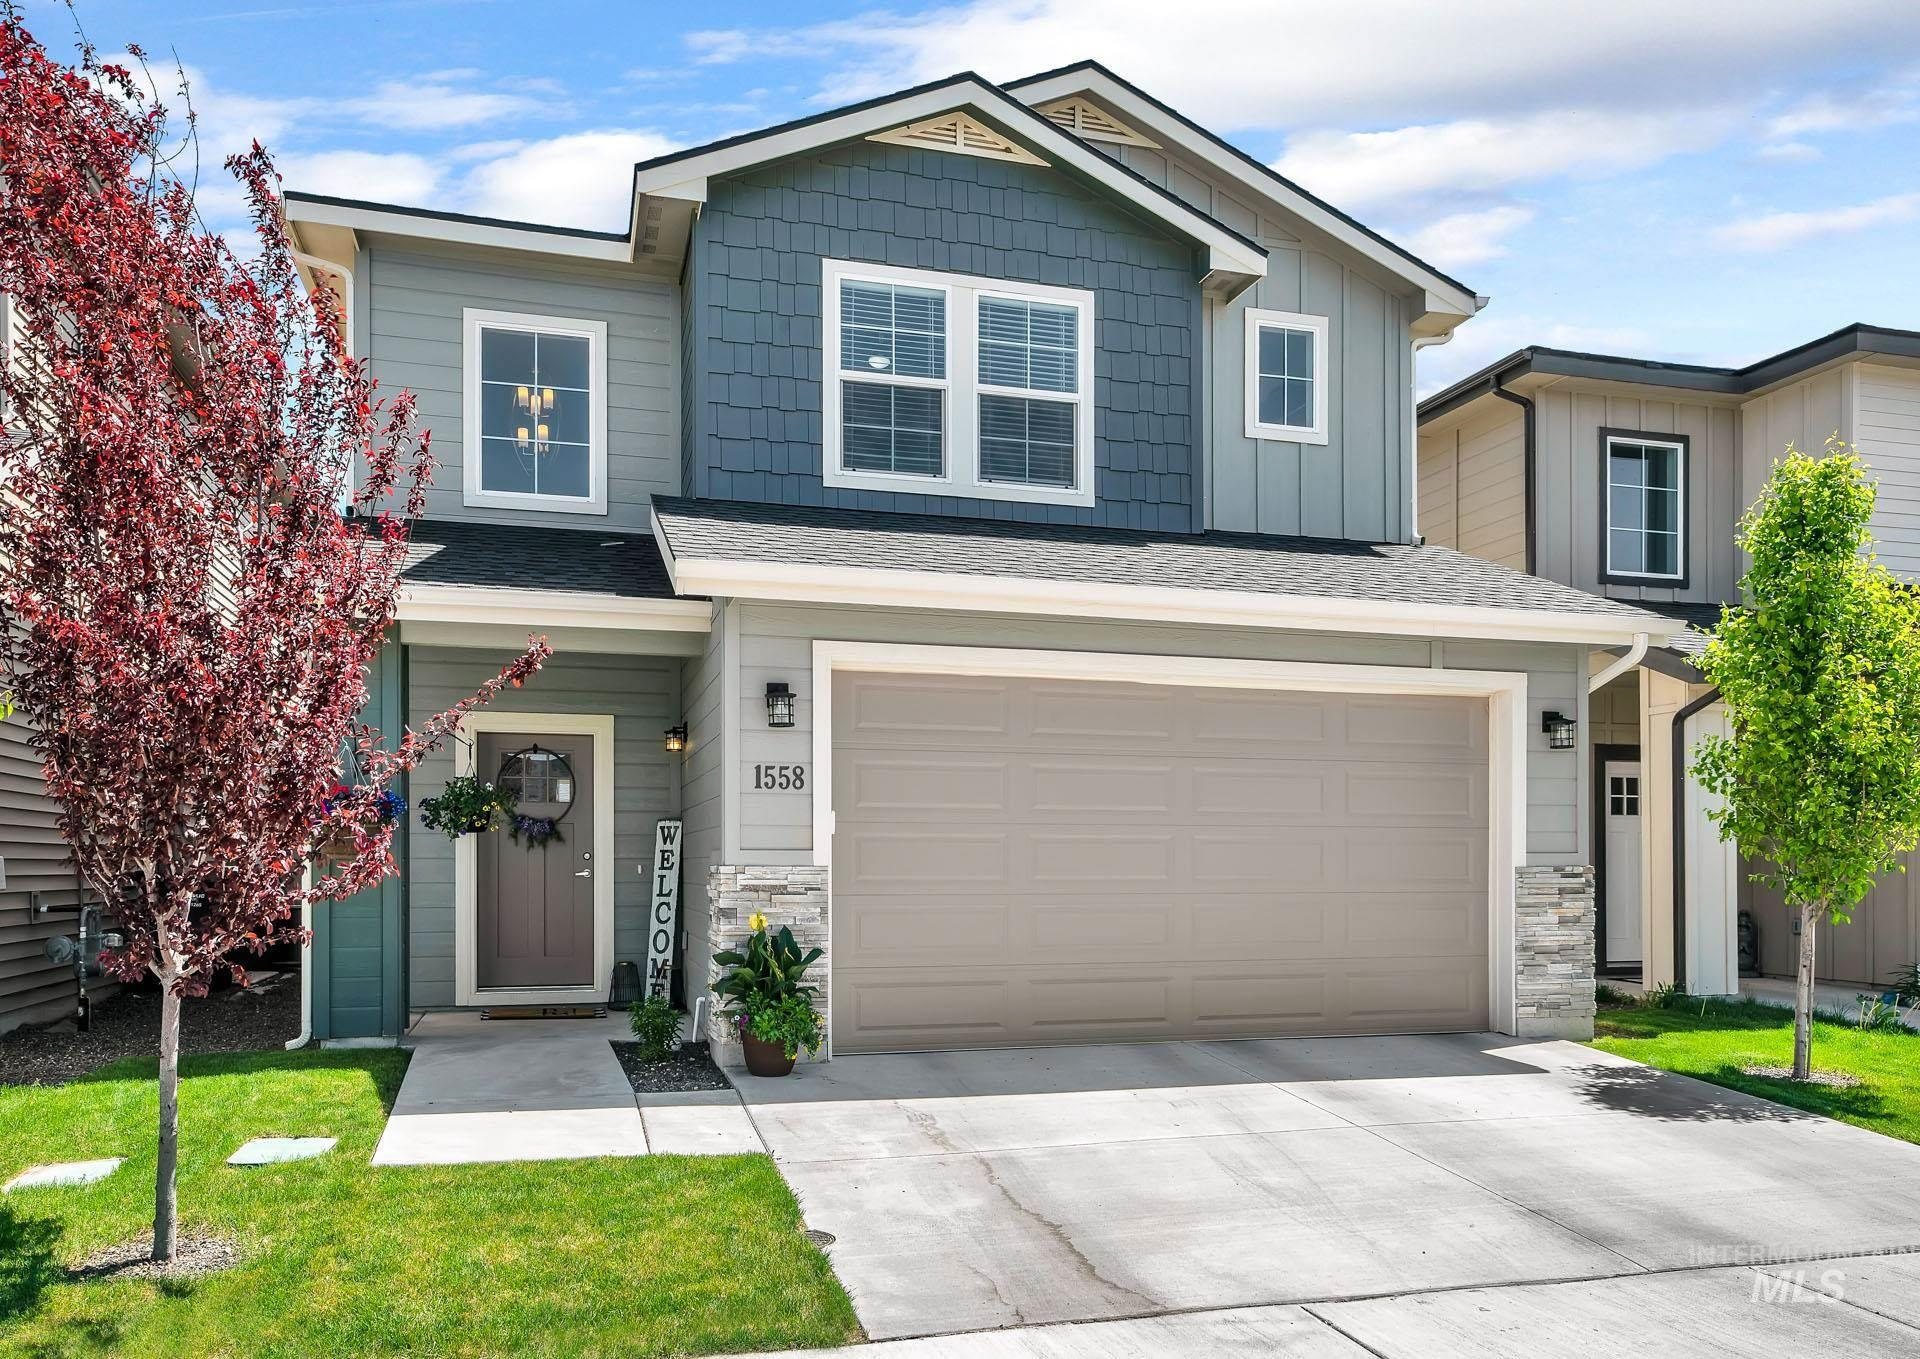 1558 S PILAR WAY Property Photo - Nampa, ID real estate listing